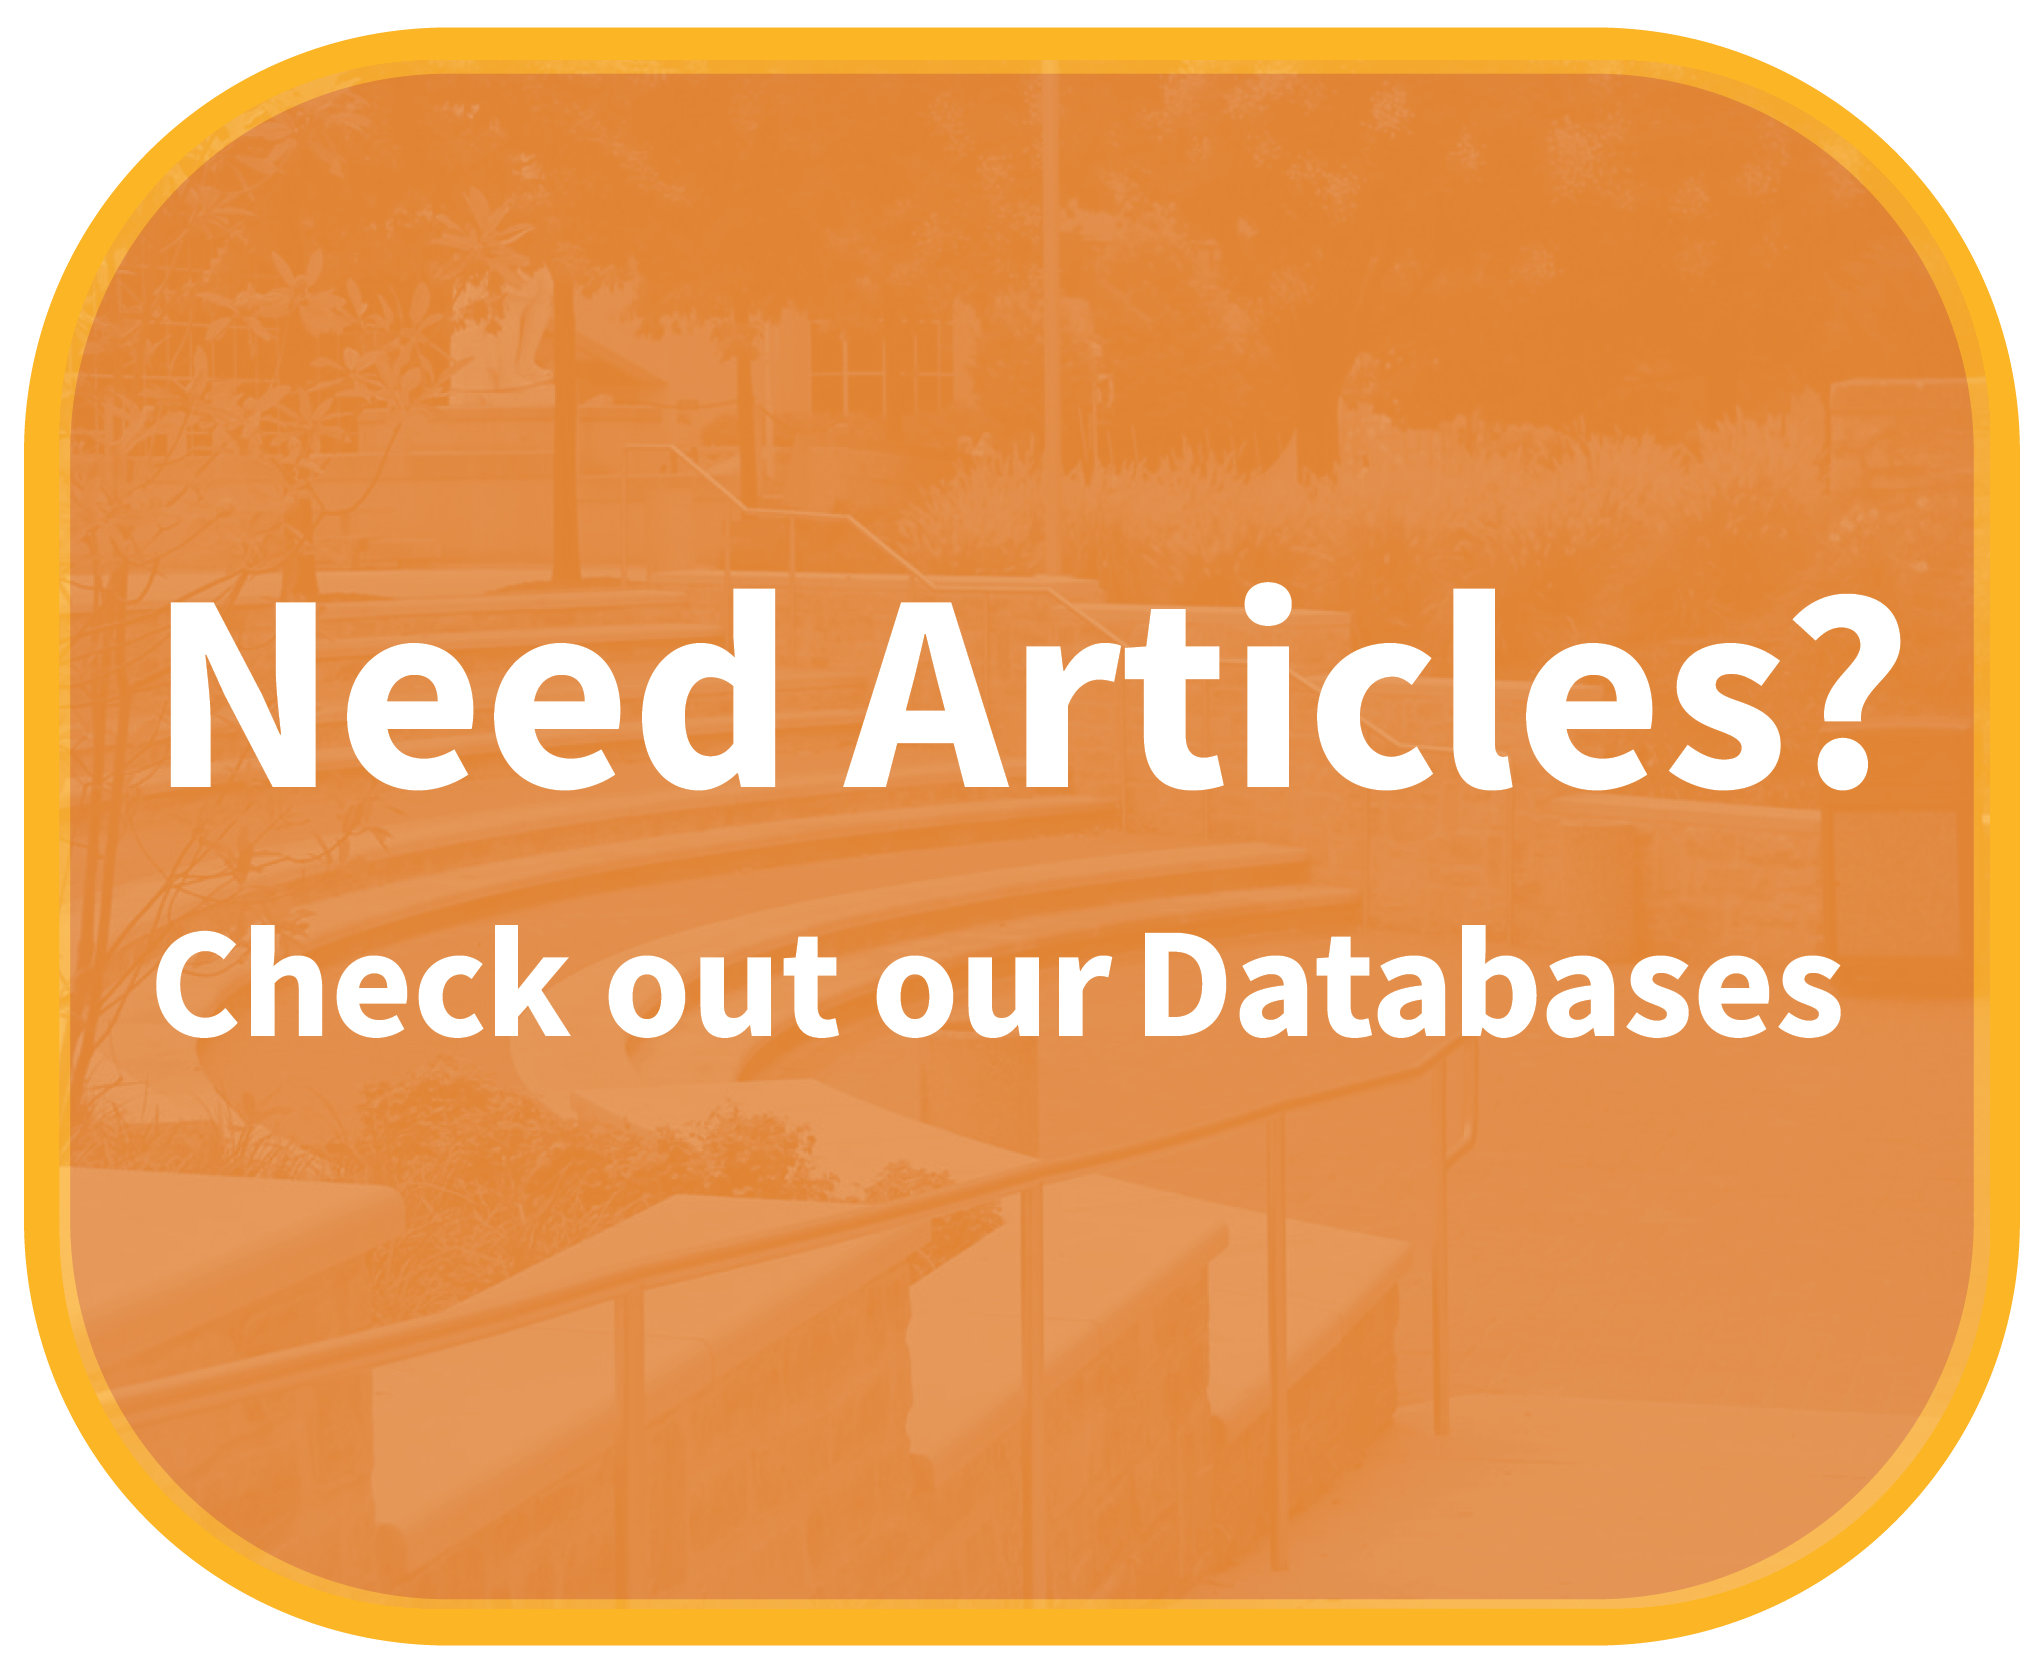 Need Articles? Check out our Databases